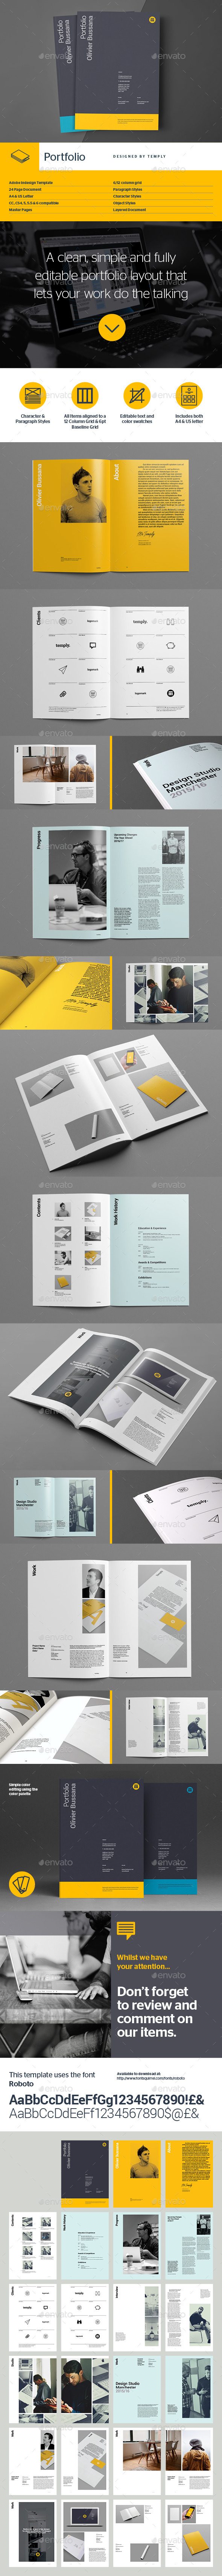 GraphicRiver Portfolio Template 11251846